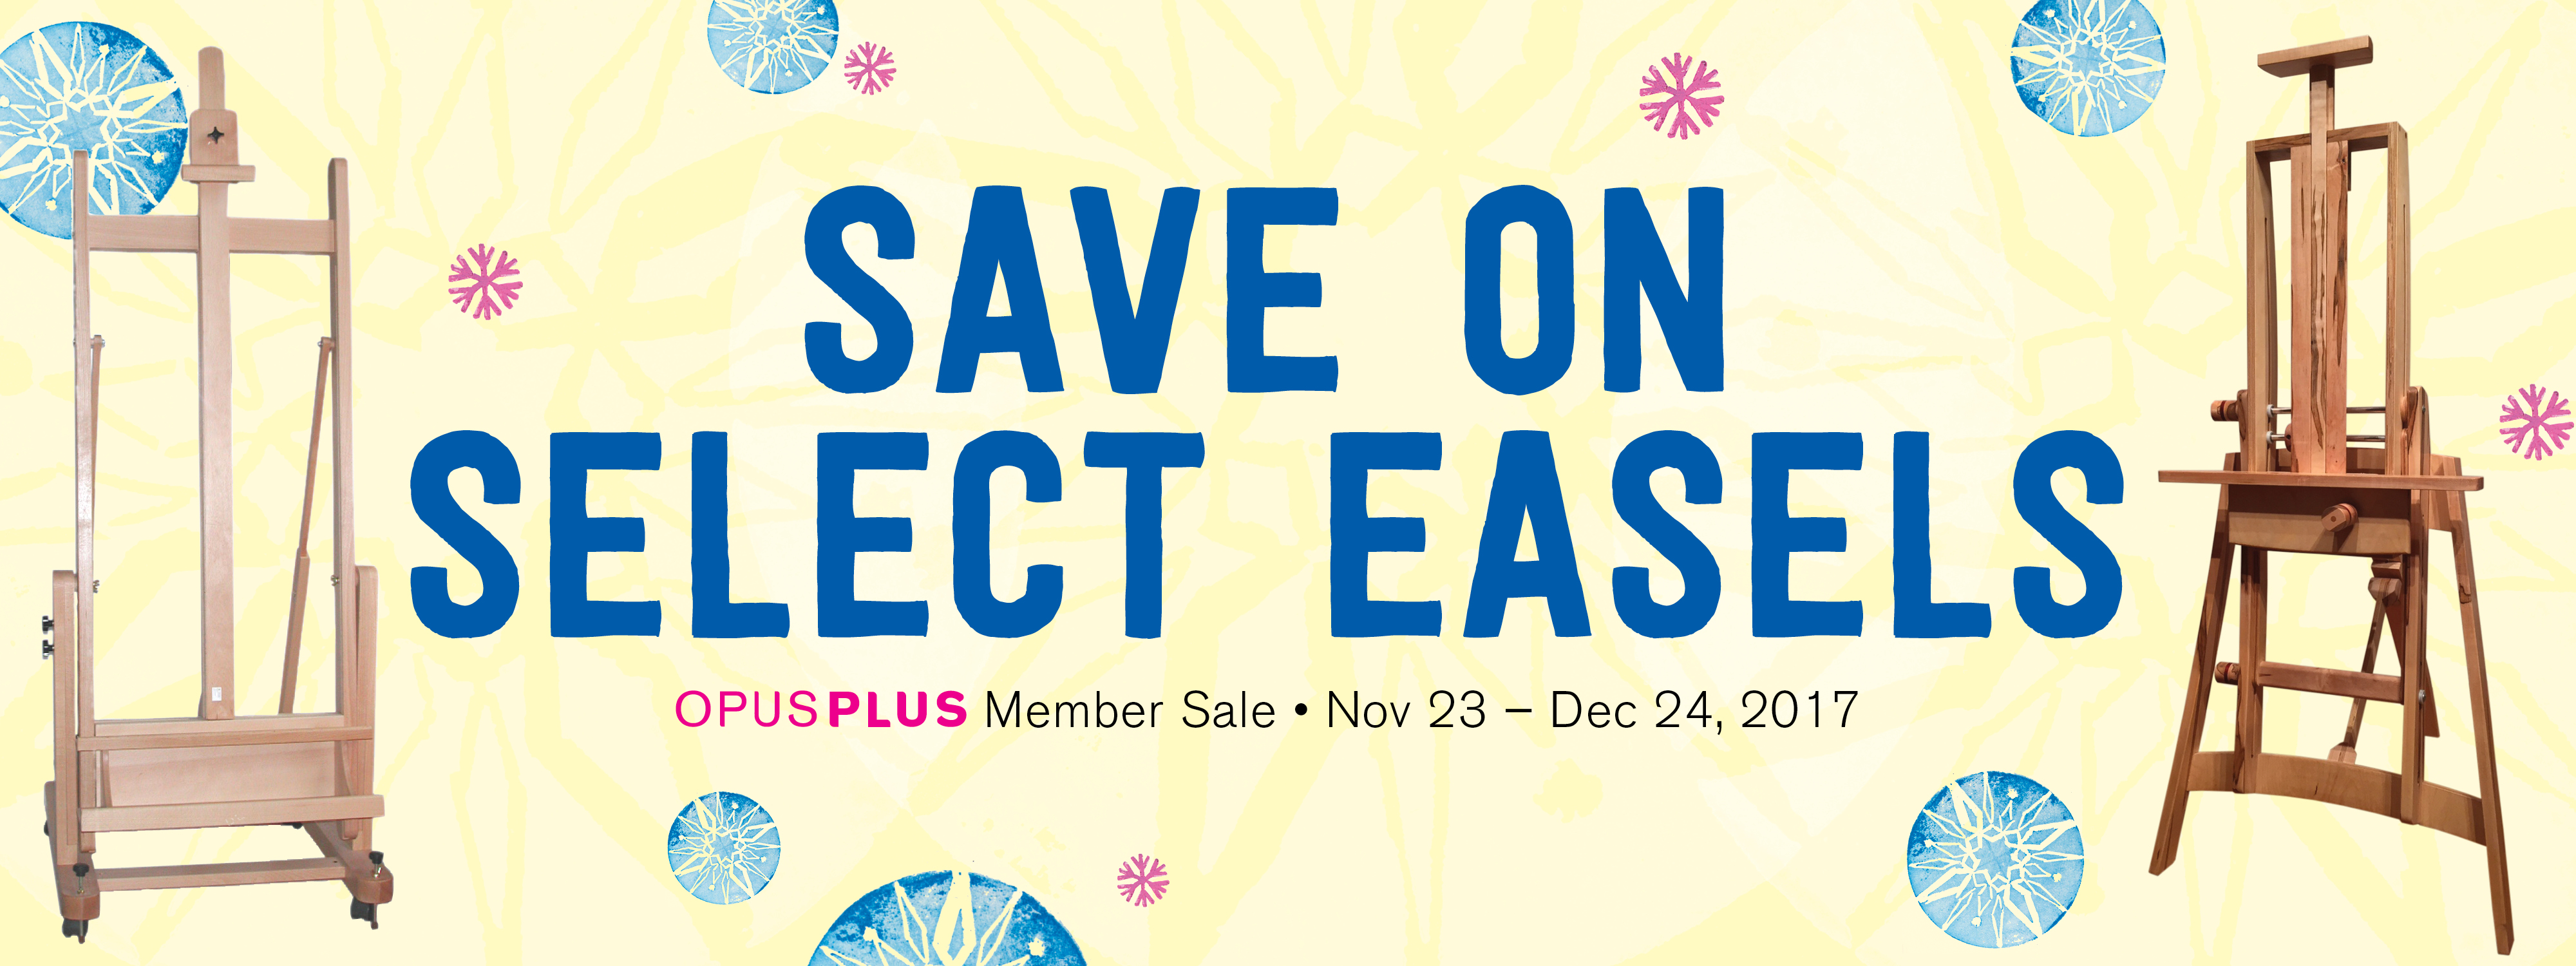 Save on Select Easels from November 23 to December 24, 2017